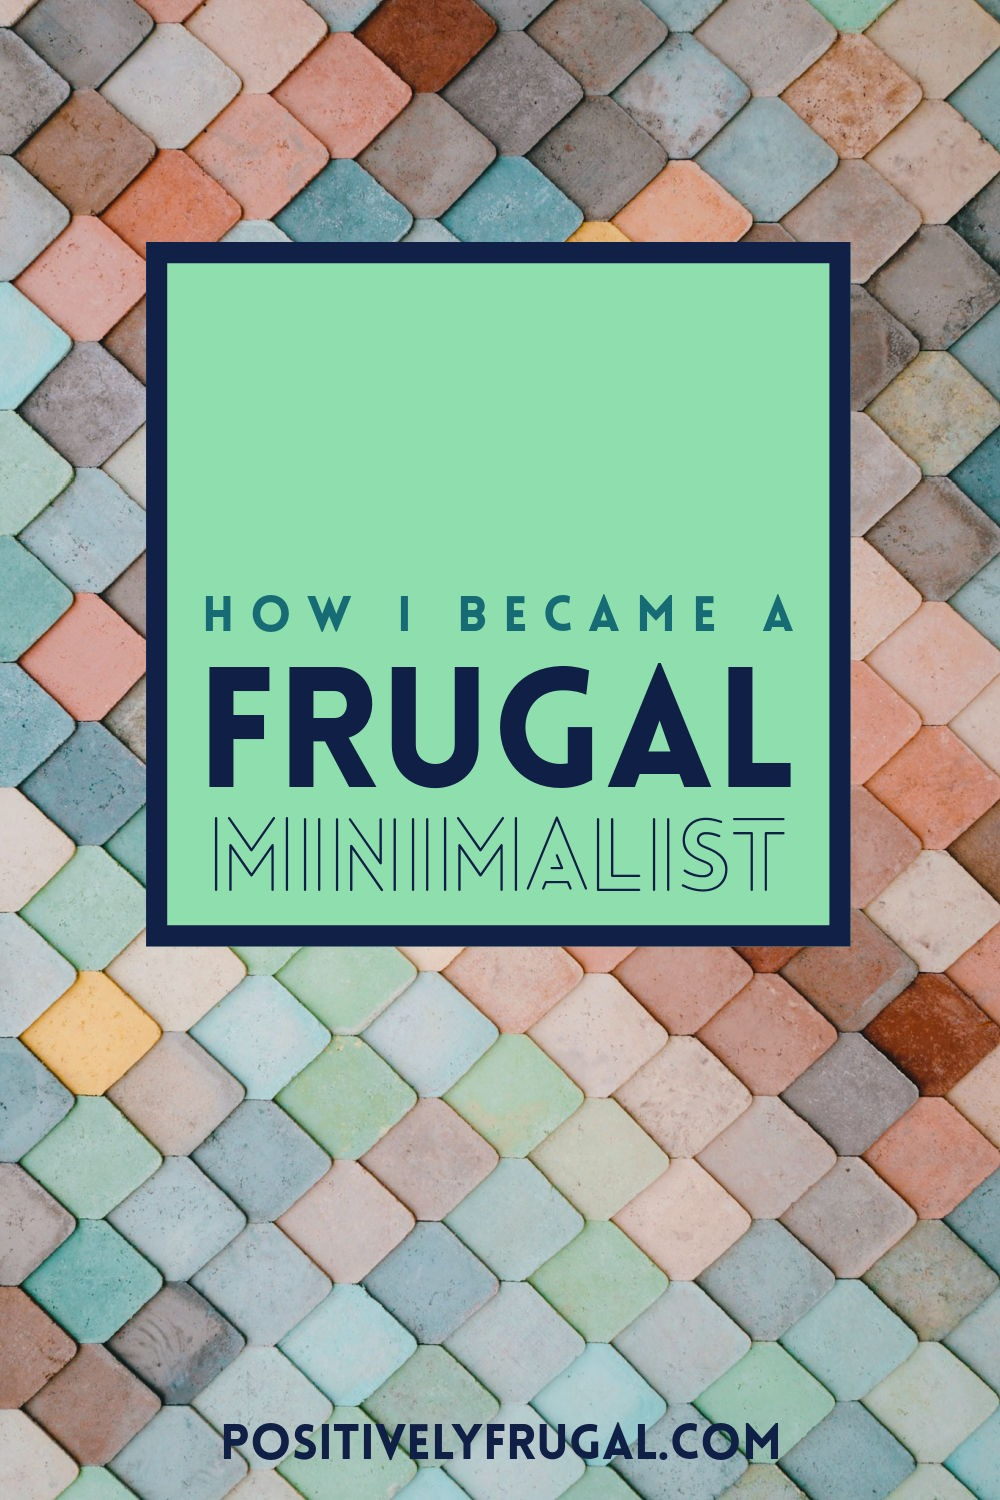 How I Became a Frugal Minimalist by PositivelyFrugal.com